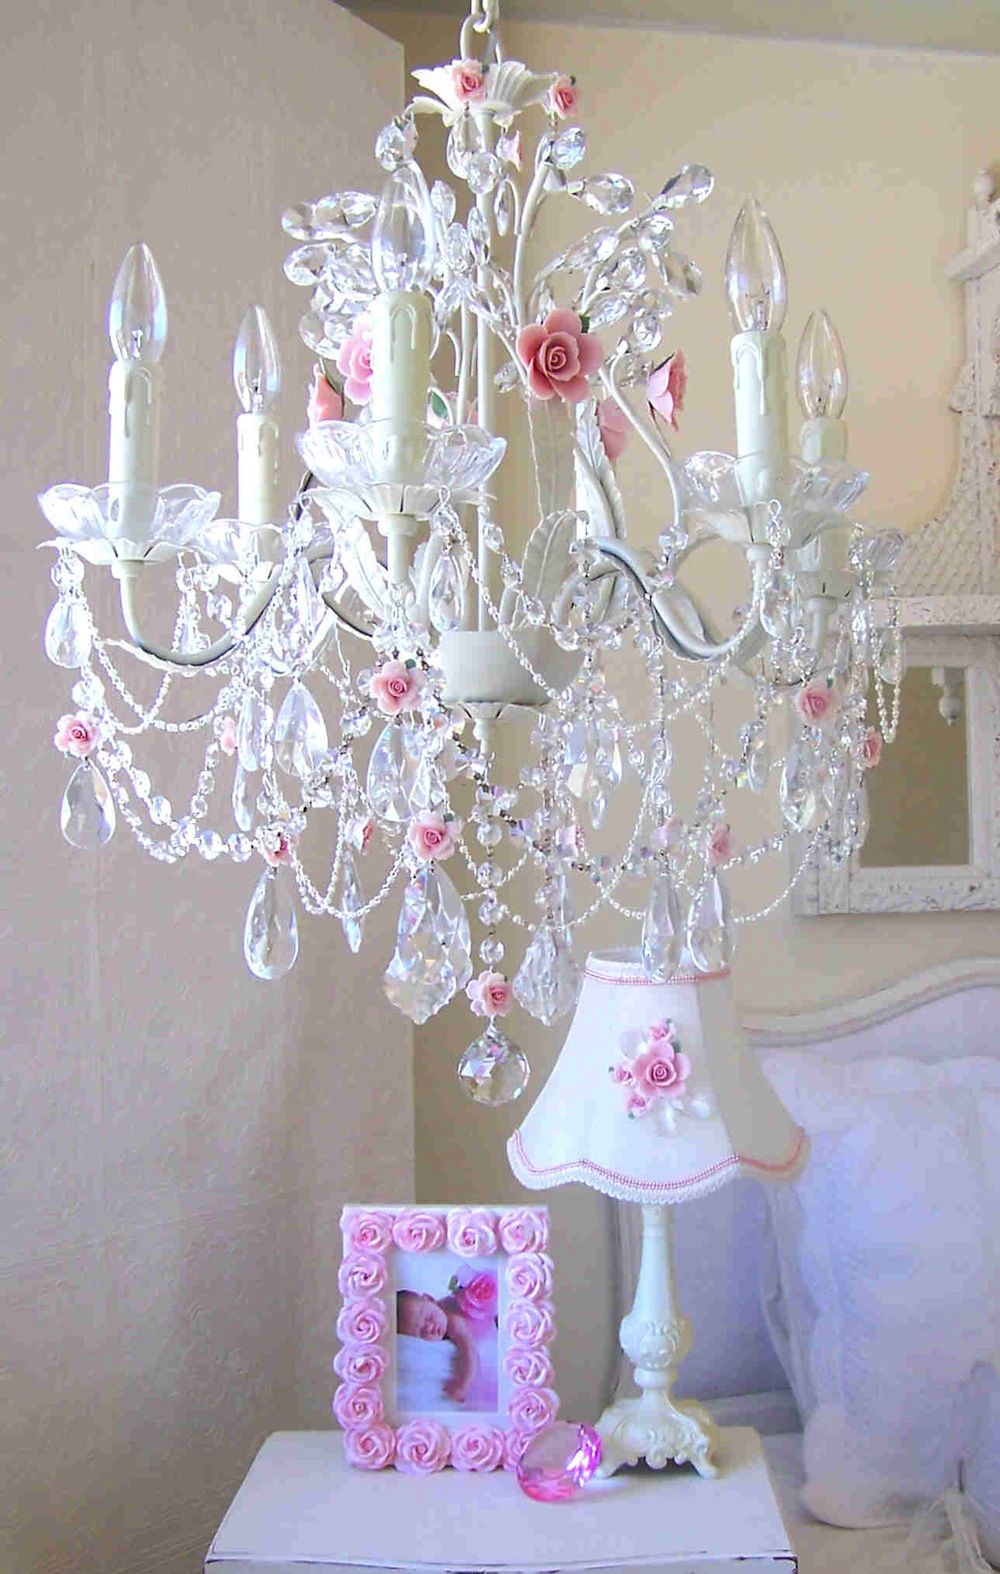 Crystal chandeliers for nurseries lighting kids lighting crystal chandeliers for nurseries lighting kids lighting nursery chandeliers kids lamps shabby chic aloadofball Images